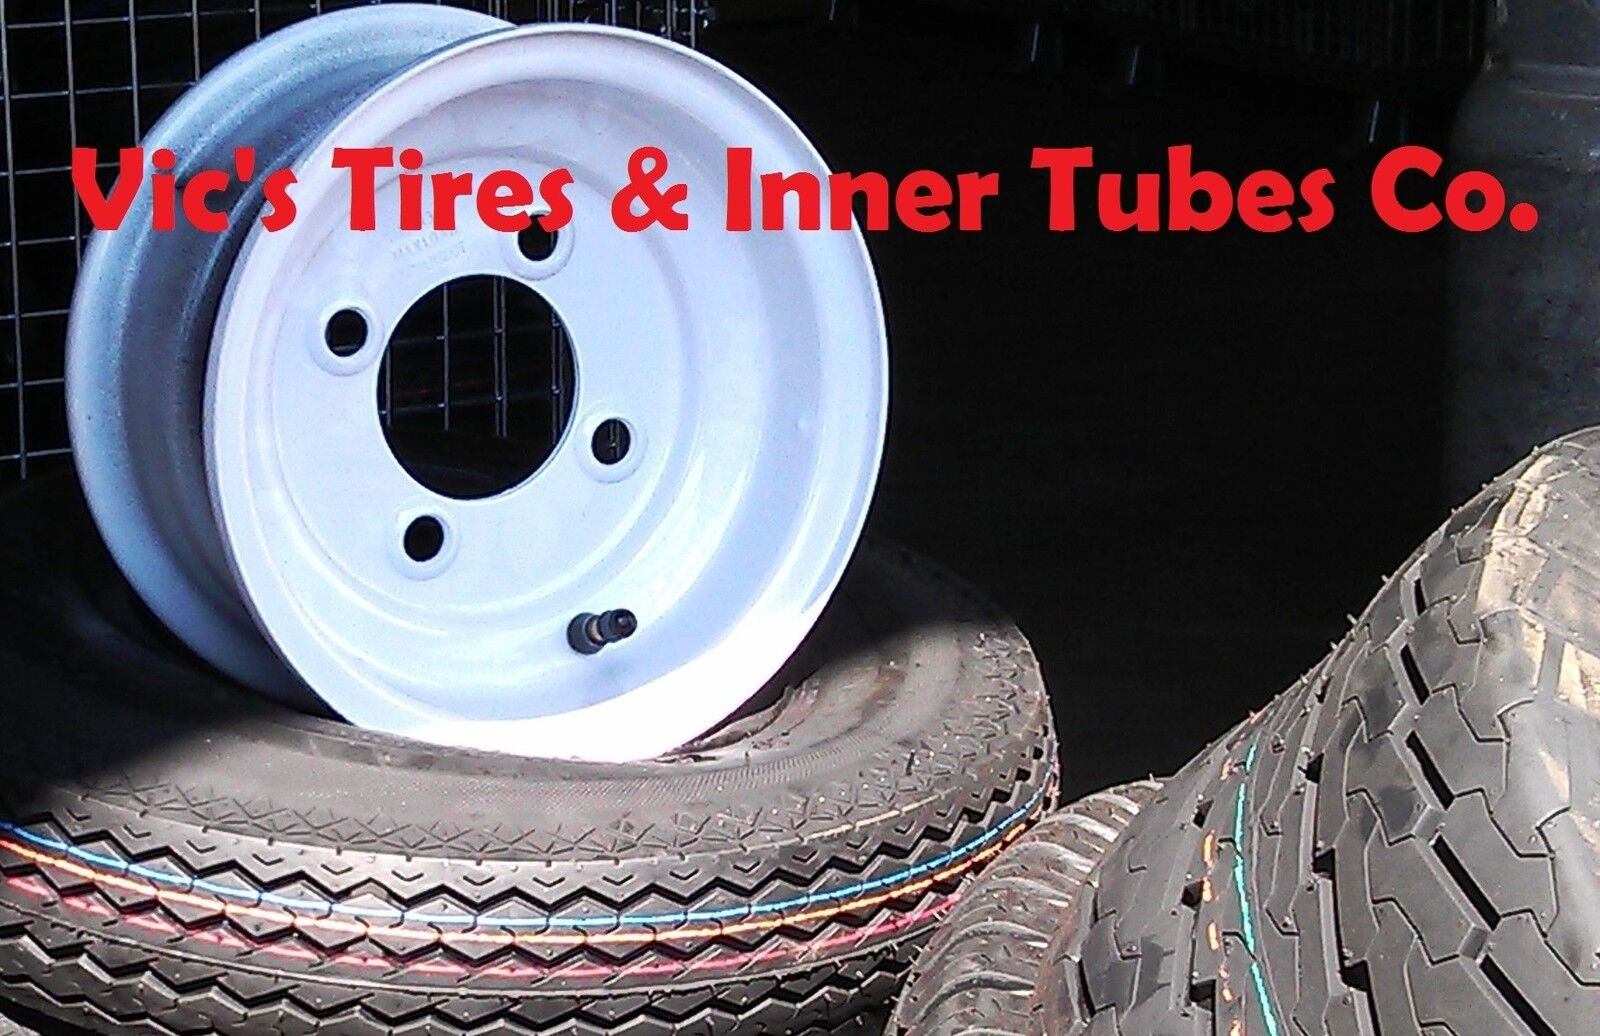 Vic's Tires&Inner Tubes Co